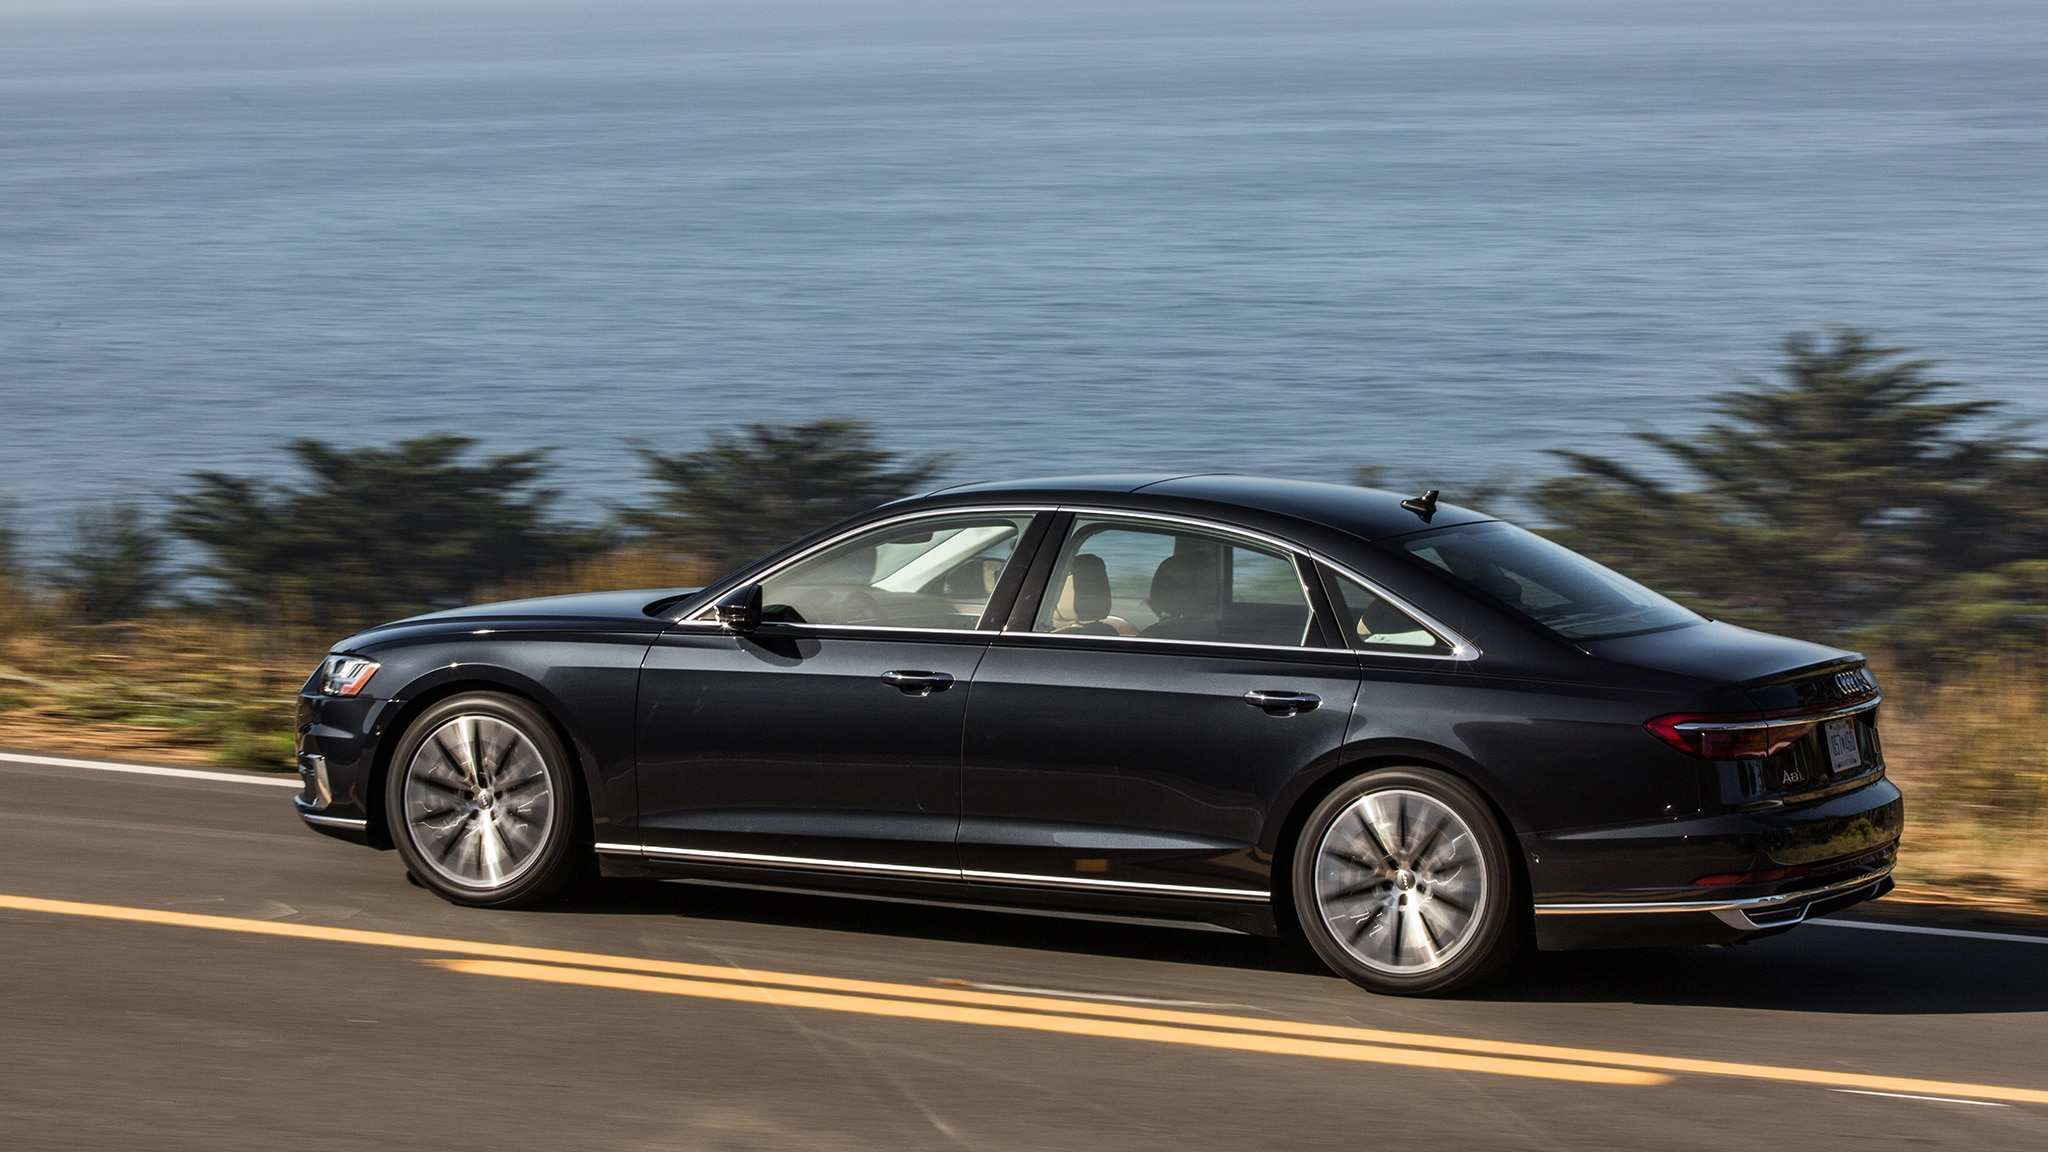 56 Concept of 2019 Audi A8 L Wallpaper for 2019 Audi A8 L